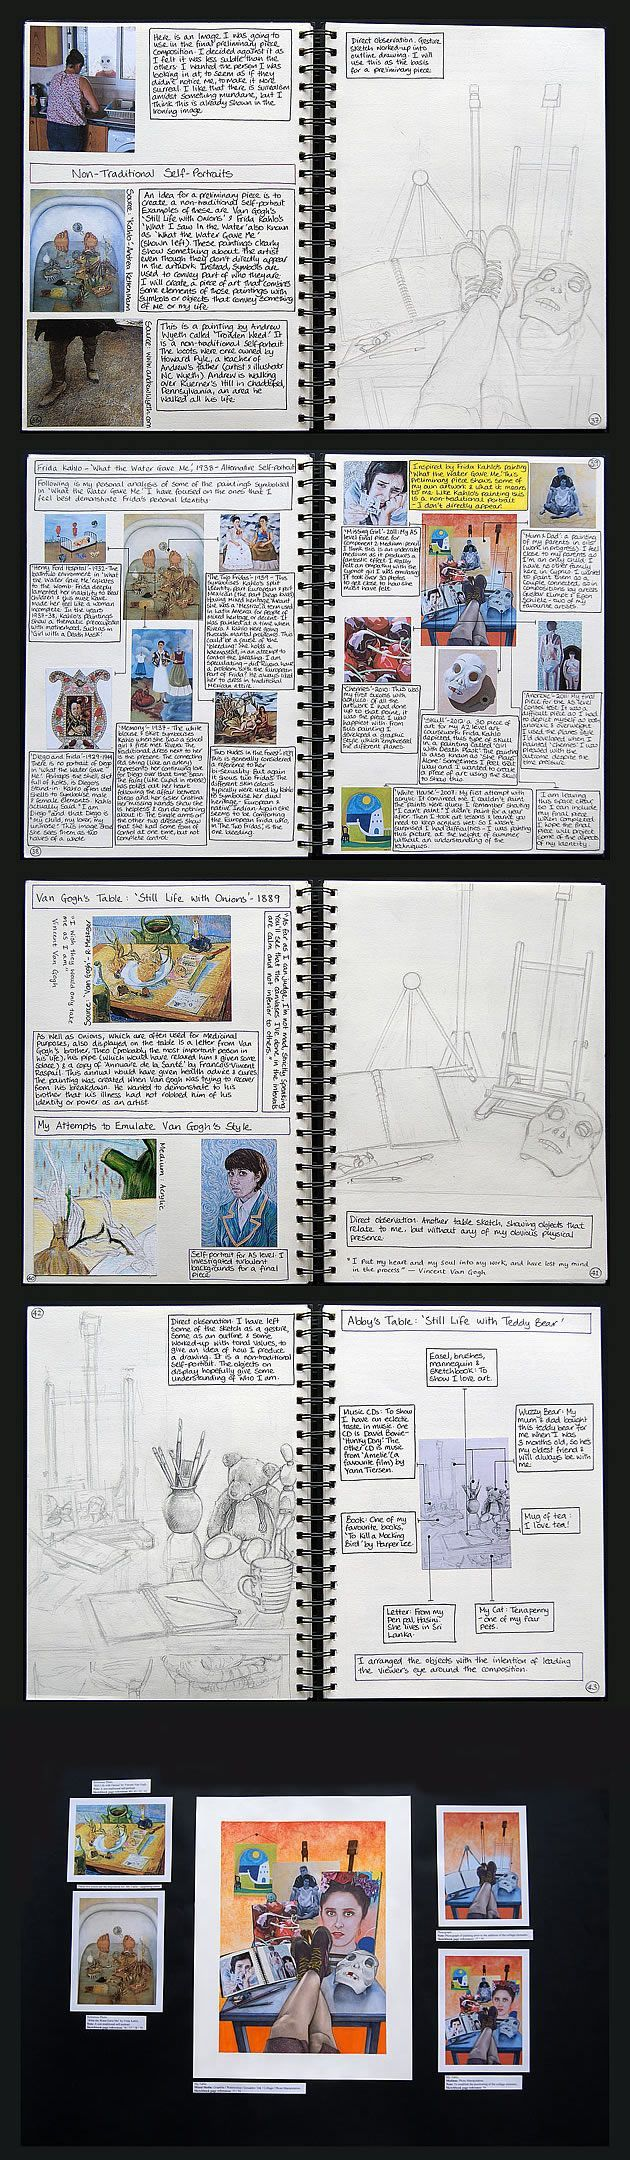 Abby Hope Skinner. Drawing from observation in art. This section of Abby's A Level Art portfolio shows excellent reference to first-hand sources. Here she completes observational line drawings of still life items (relating to her identity as a young artist – paint brushes, easels, artwork) arranged on a studio desk. The compositions communicate the essence of Abby's identity, without the inclusion of a typical self-portrait – an innovative way of approaching a self-portrait.